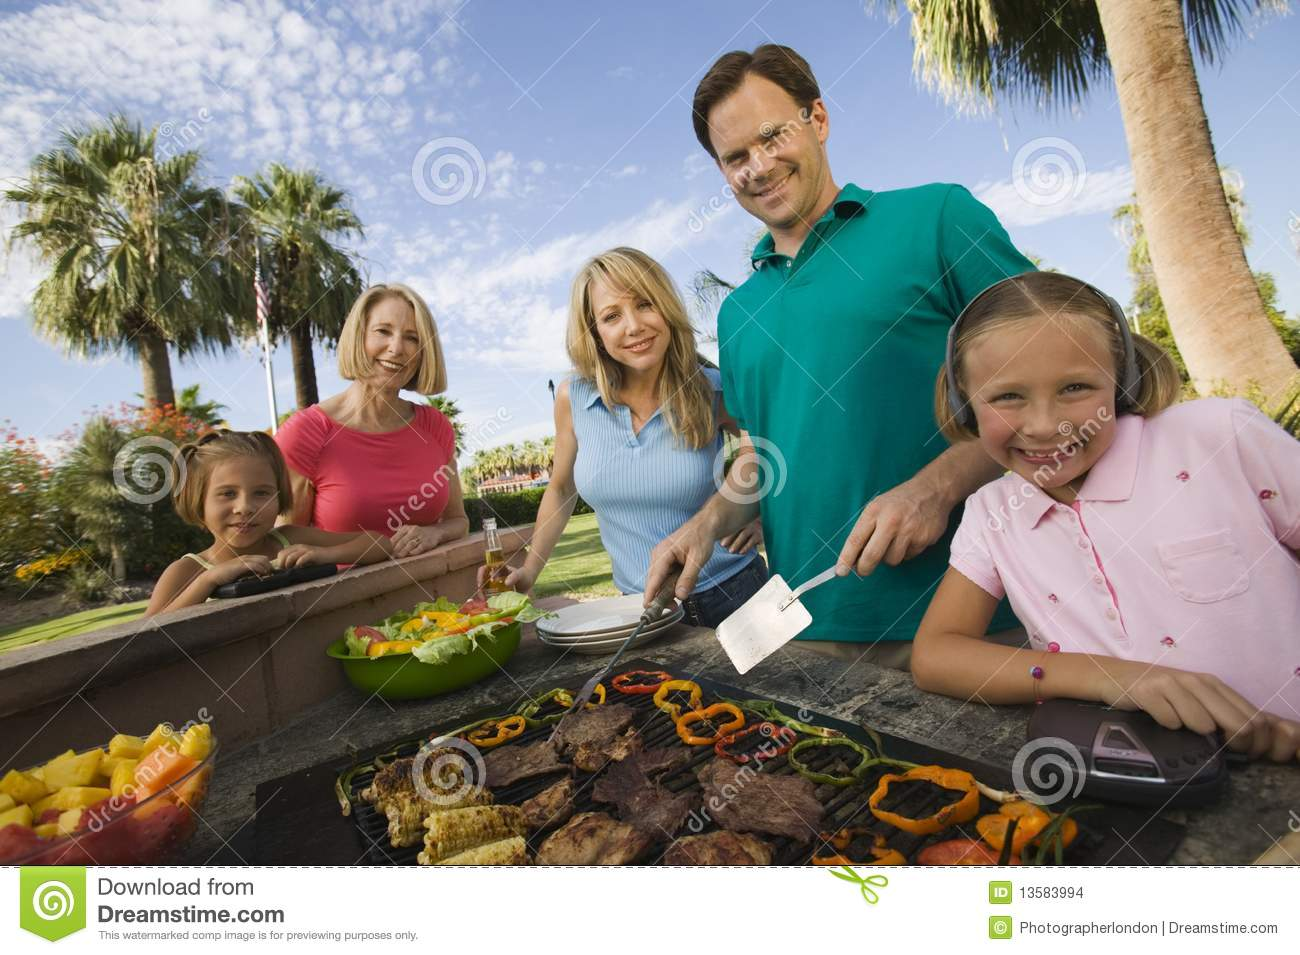 Family Bbq Stock Photos, Images, & Pictures - 2,889 Images